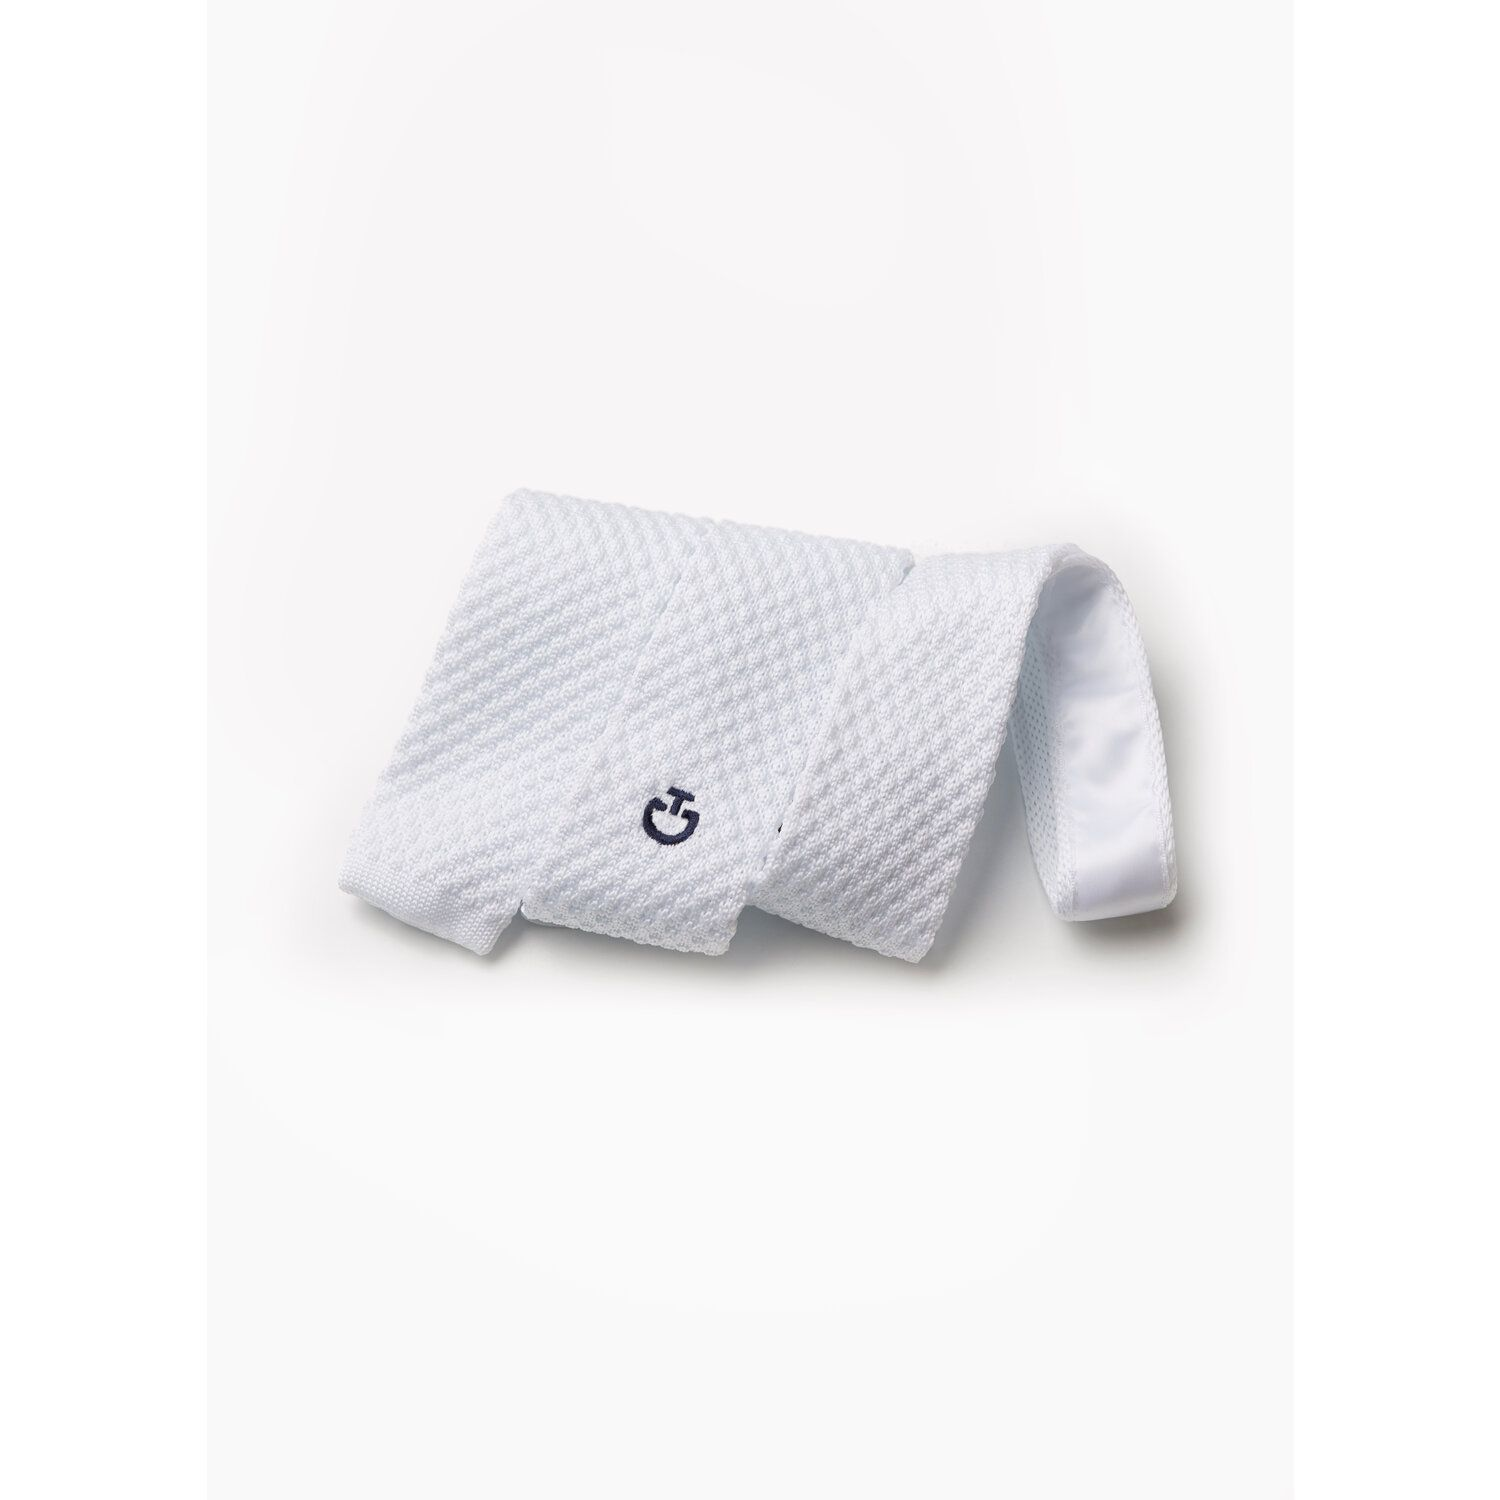 Tricot tie with logo